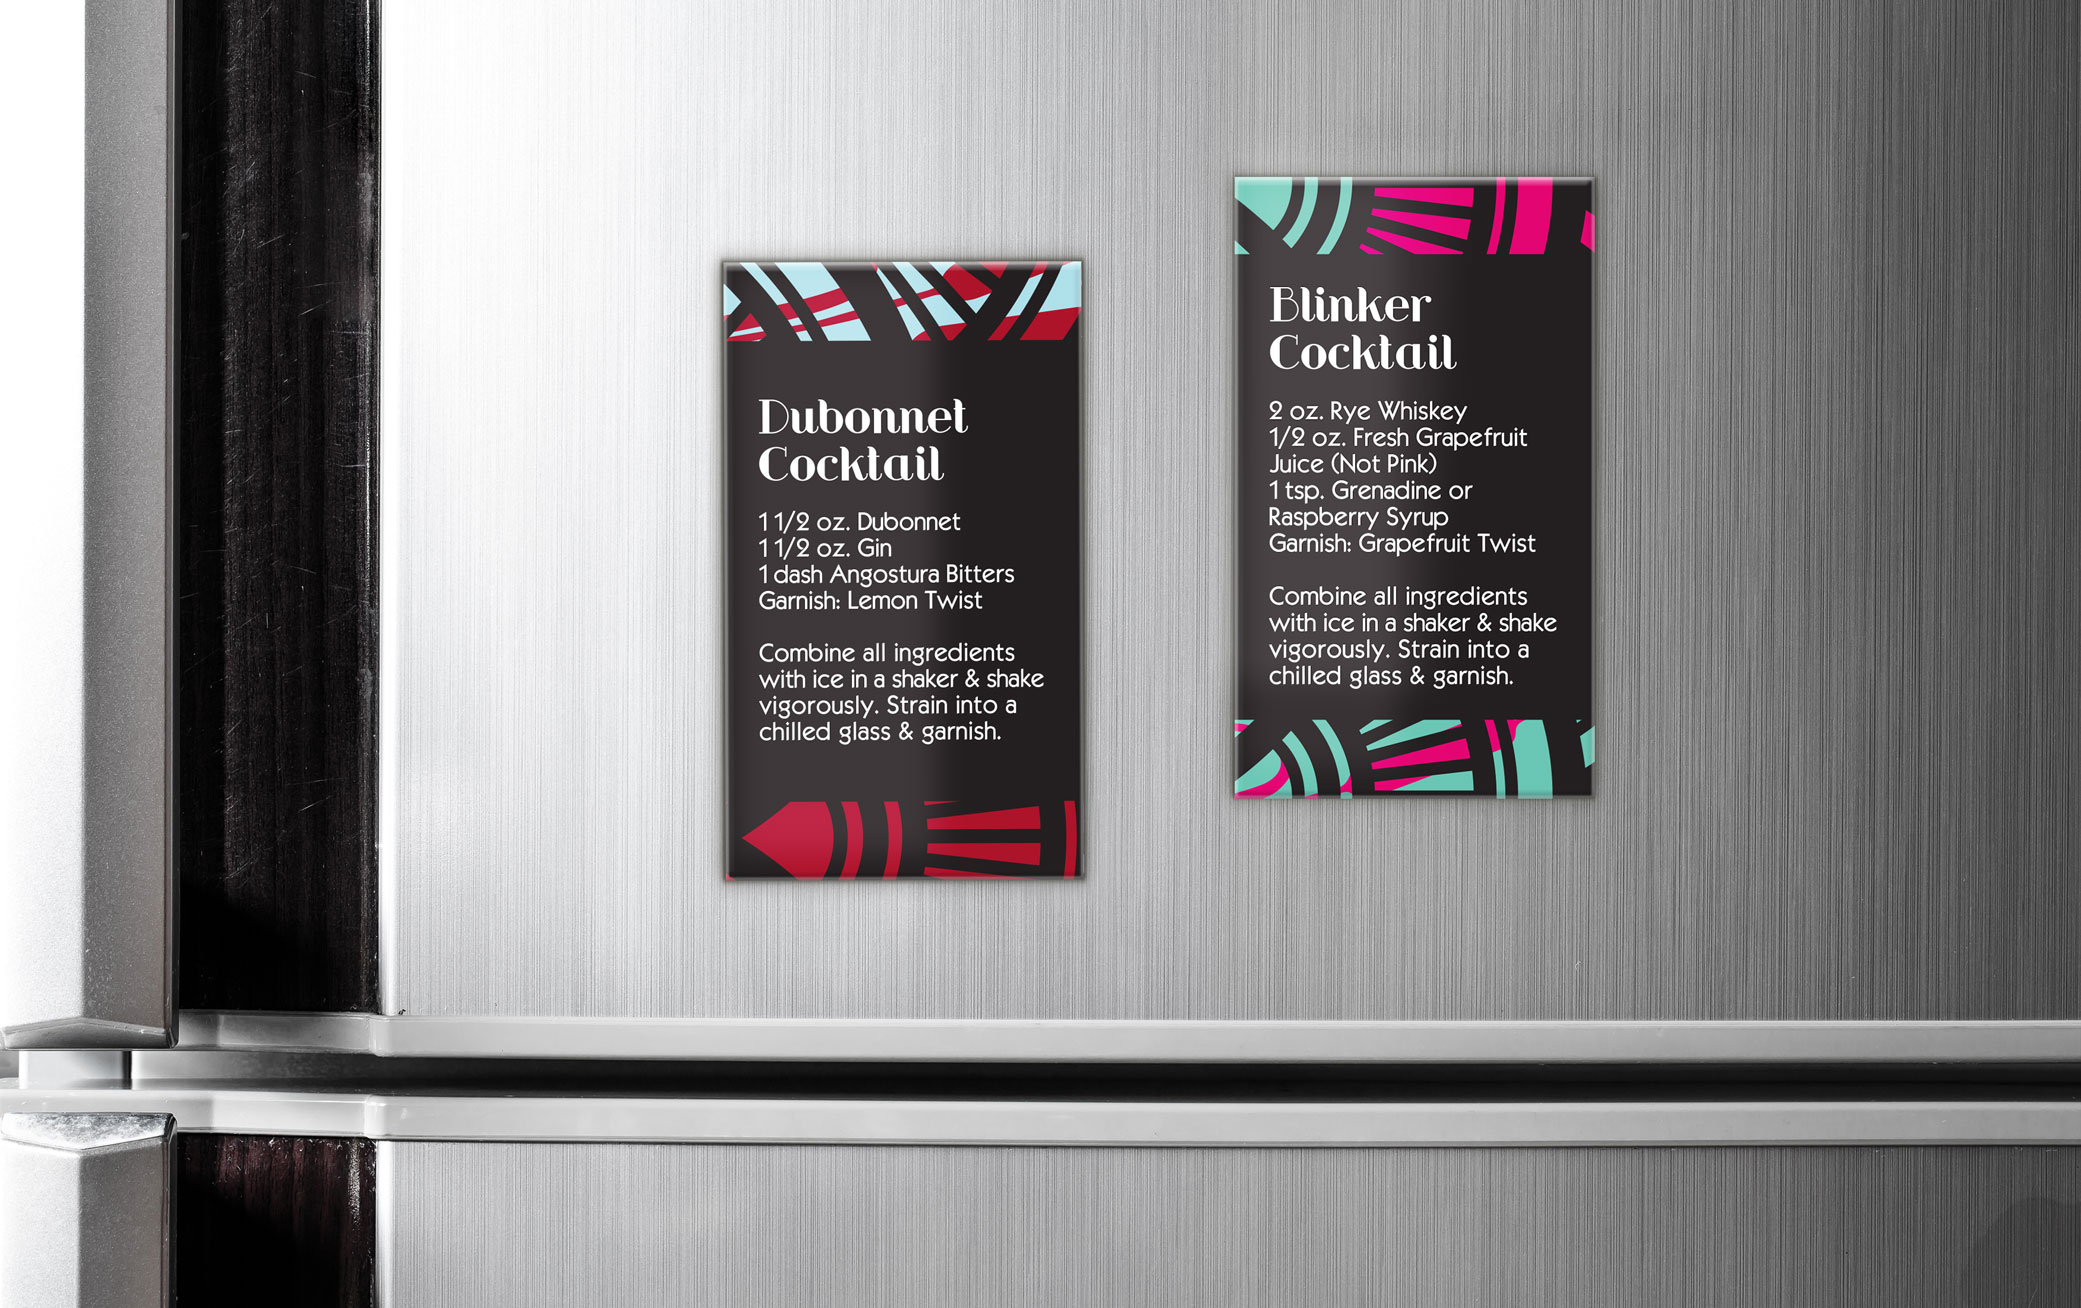 42 Dubonnet Dubonnet and Blinker Cocktail magnets design against a stainless steel refrigerator showcasing the beverage's ingredients on how to create.